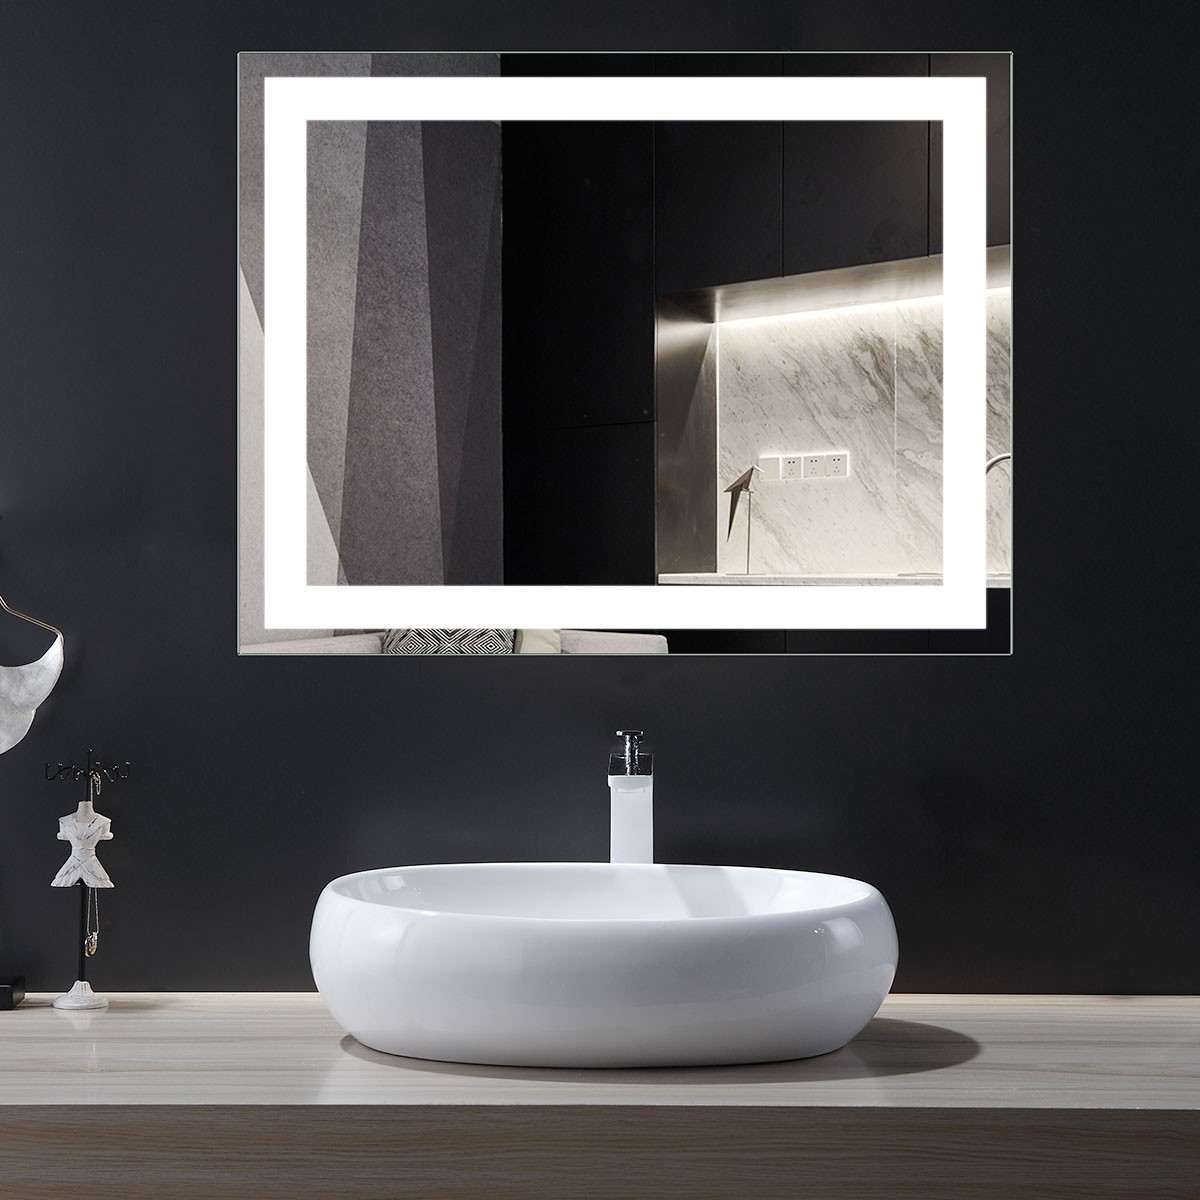 36 x 28 In LED Bathroom Mirror with Infrared Sensor (DK-OD-CK010-IG)